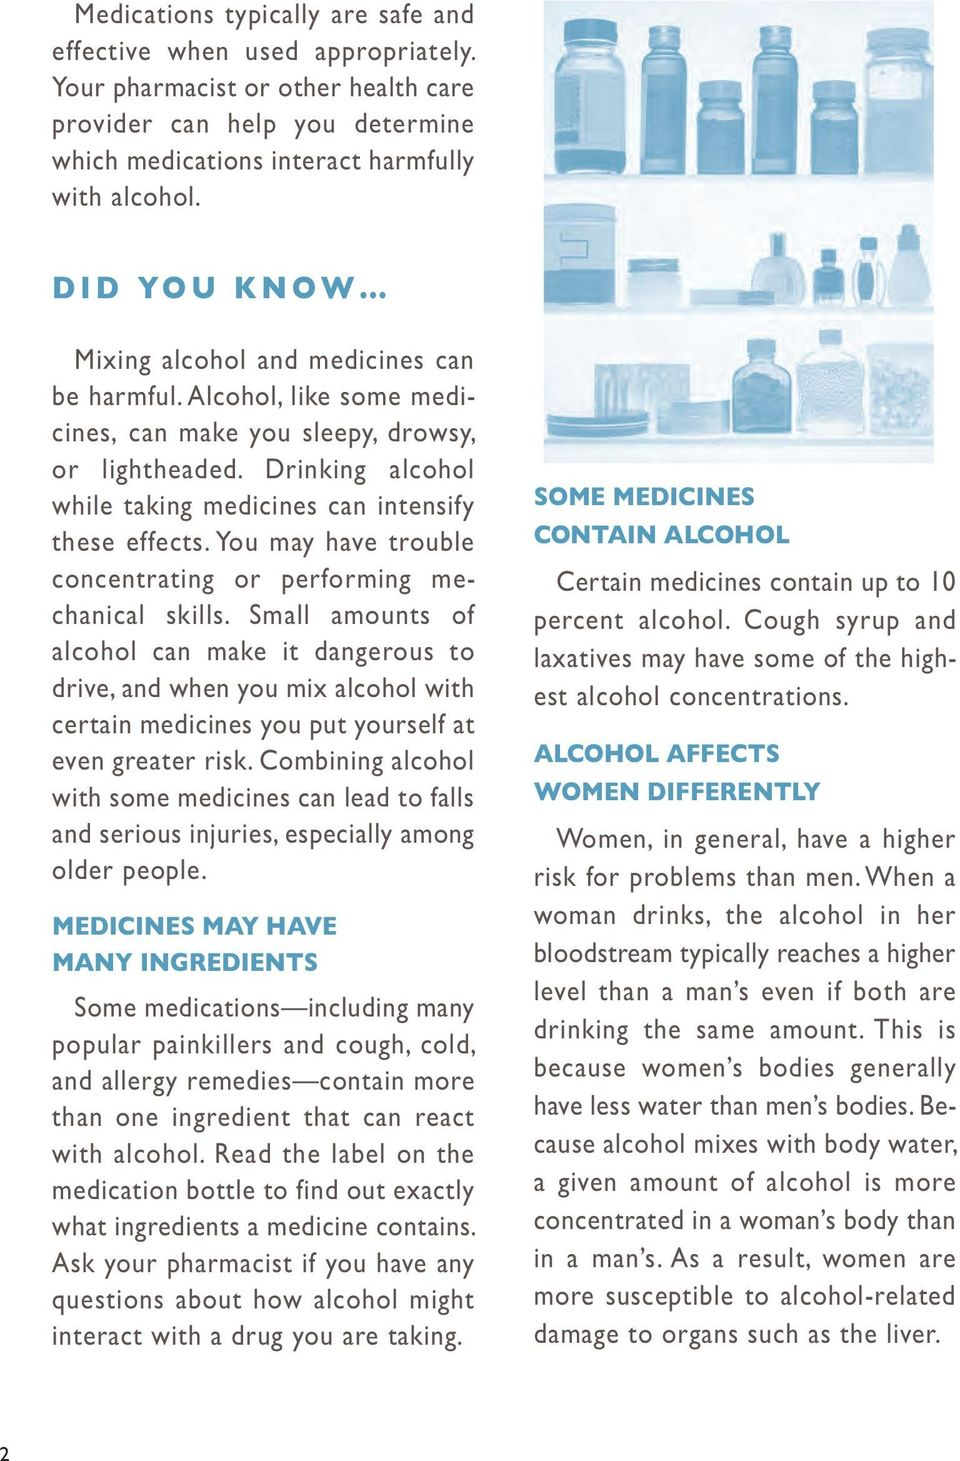 Drinking alcohol while taking medicines can intensify these effects. You may have trouble concentrating or performing mechanical skills.